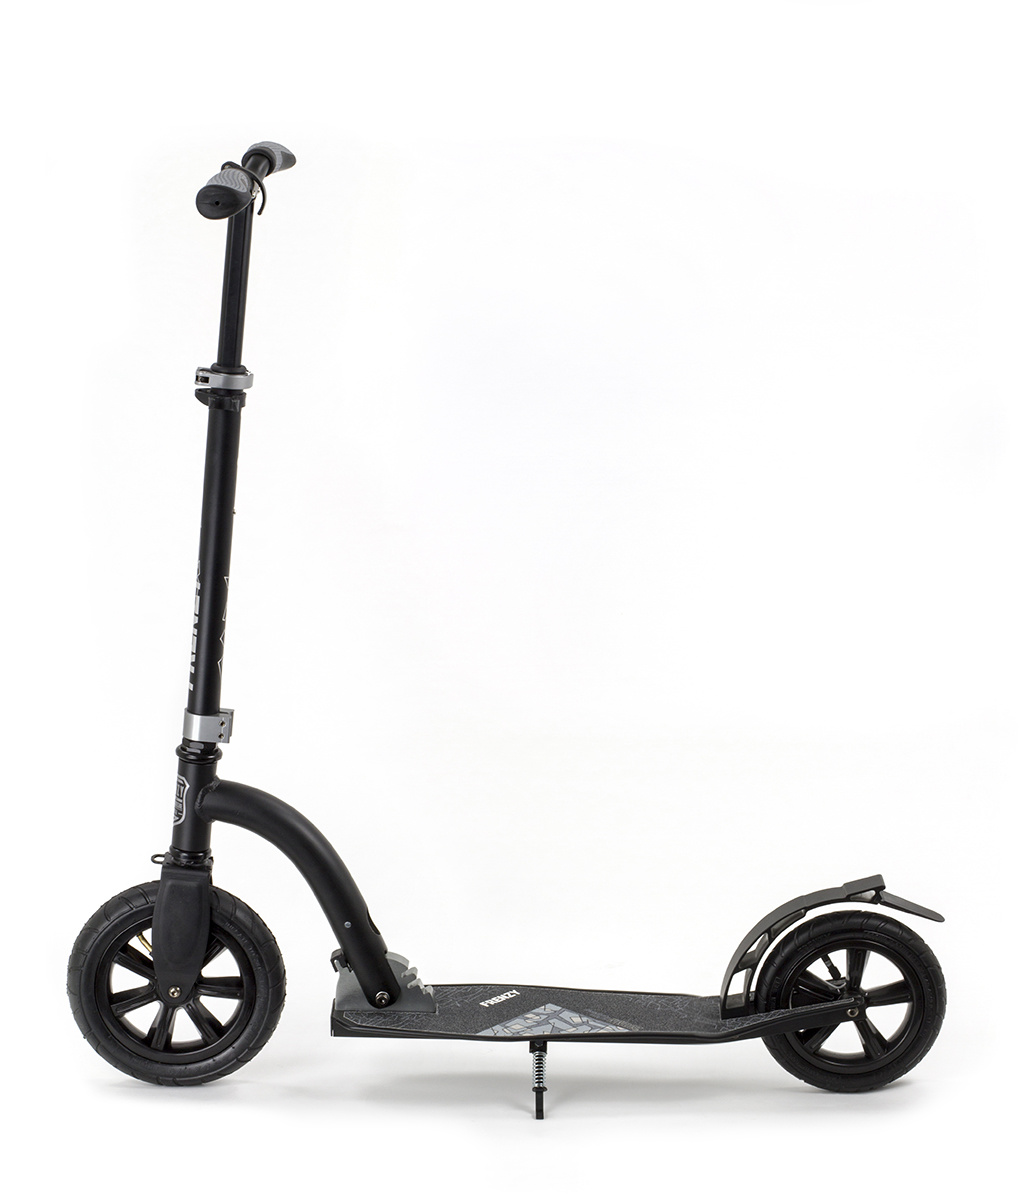 FRENZY SCOOTERS FRENZY 10+ STEP MET LUCHTBANDEN 230MM